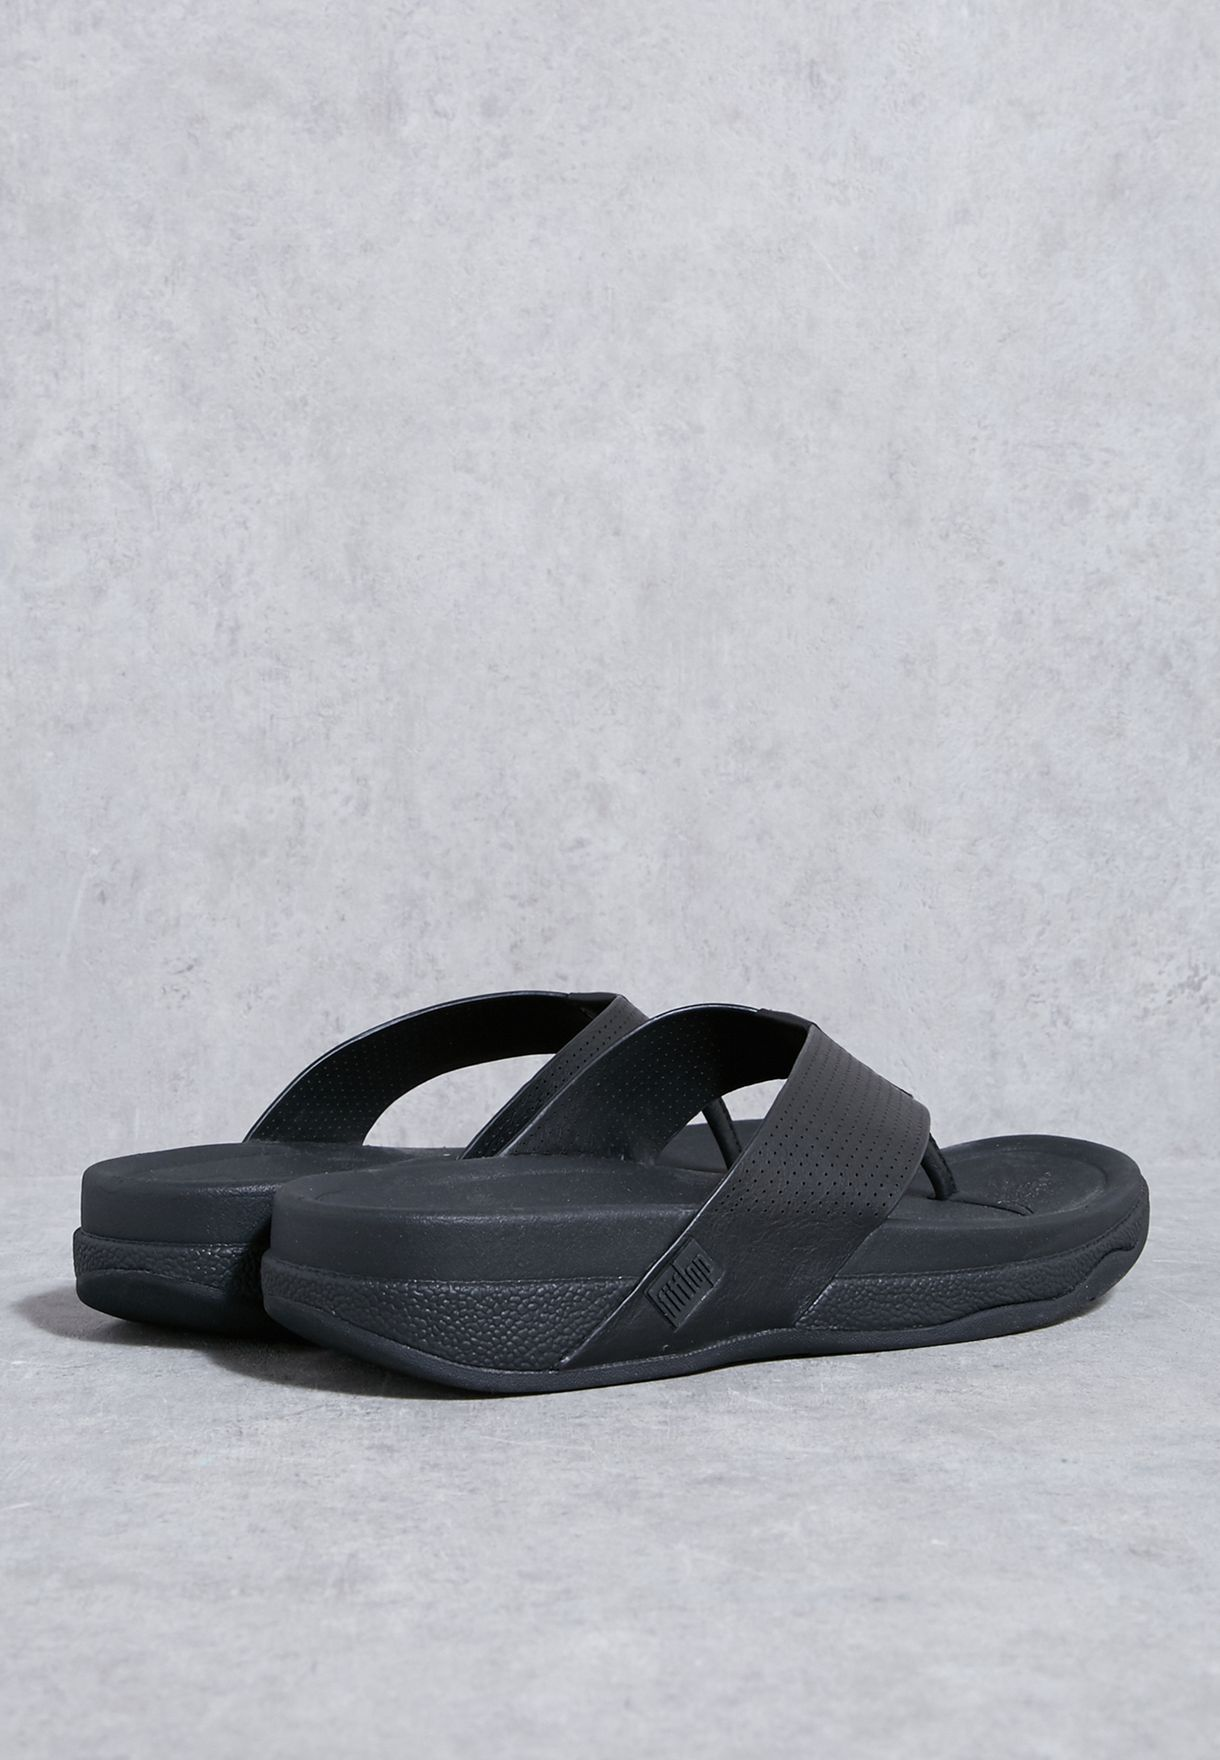 cb5f8bbcae51 Shop Fitflop black Surfer Perf Sandals C06-001 for Men in UAE ...